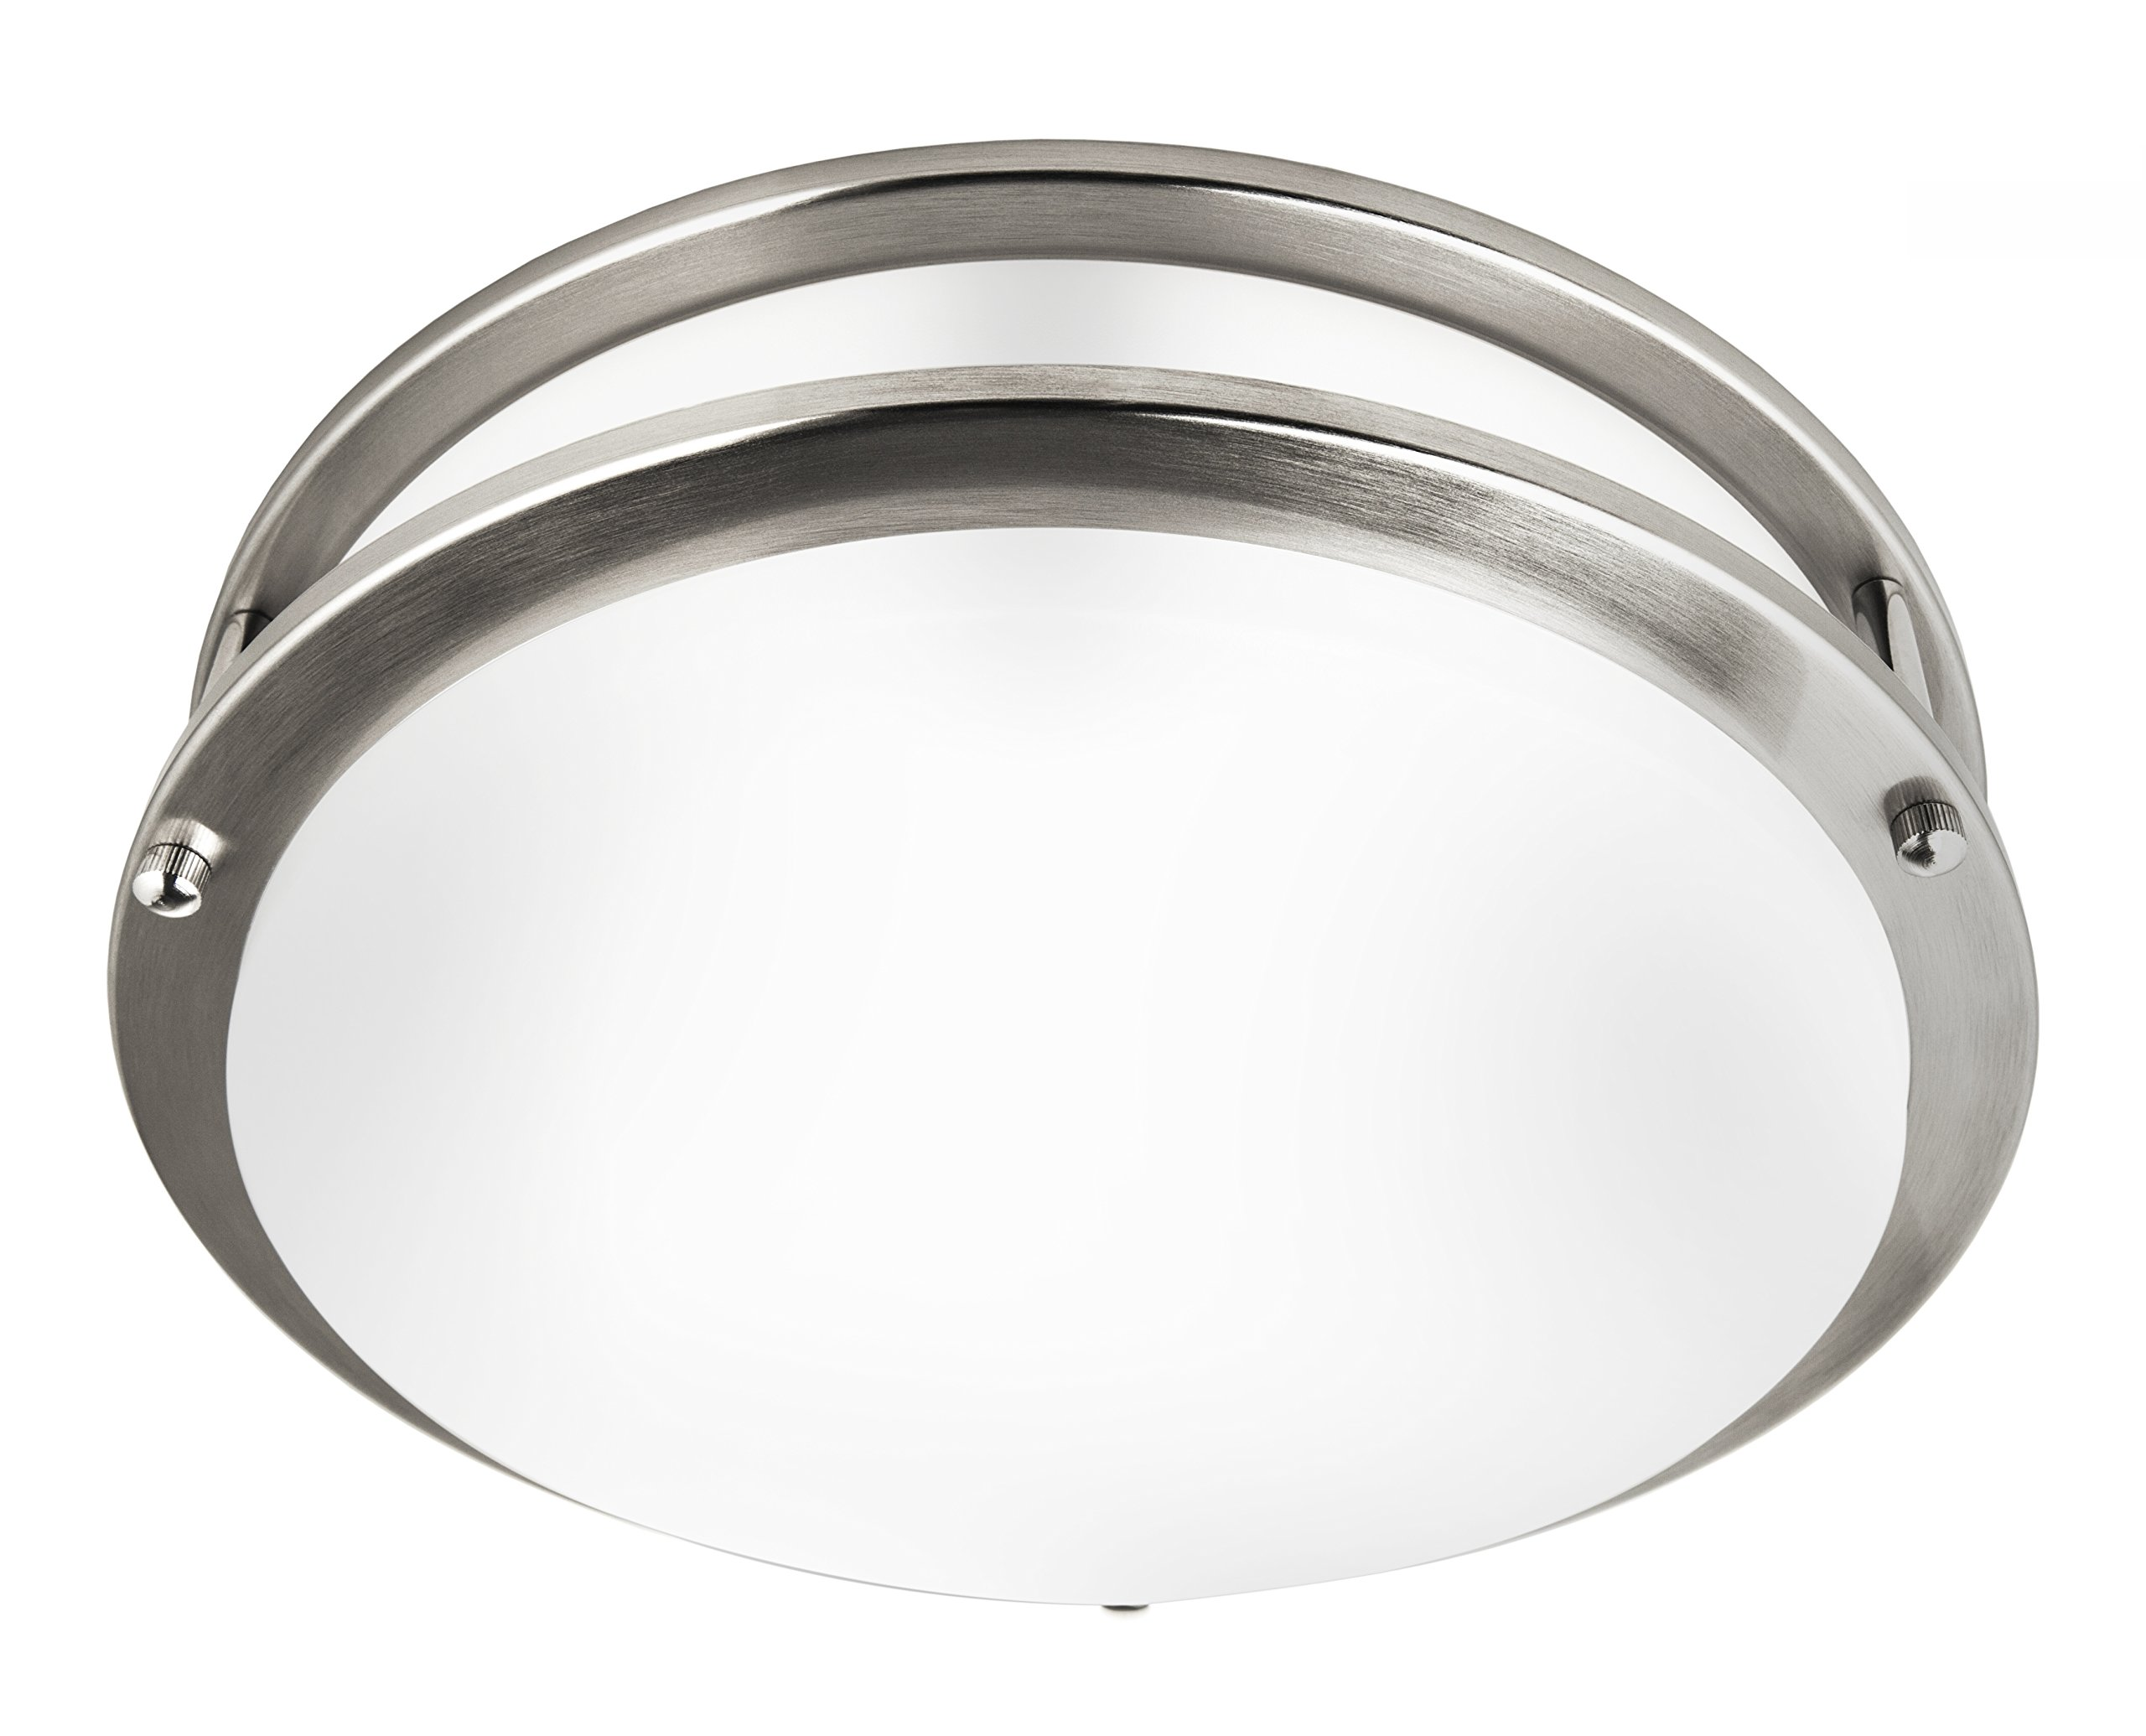 Hyperikon LED Flush Mount Ceiling Light, 14'', 100W equivalent, 1980lm, 4000K (Daylight Glow), 120V, 14-Inch, Dimmable